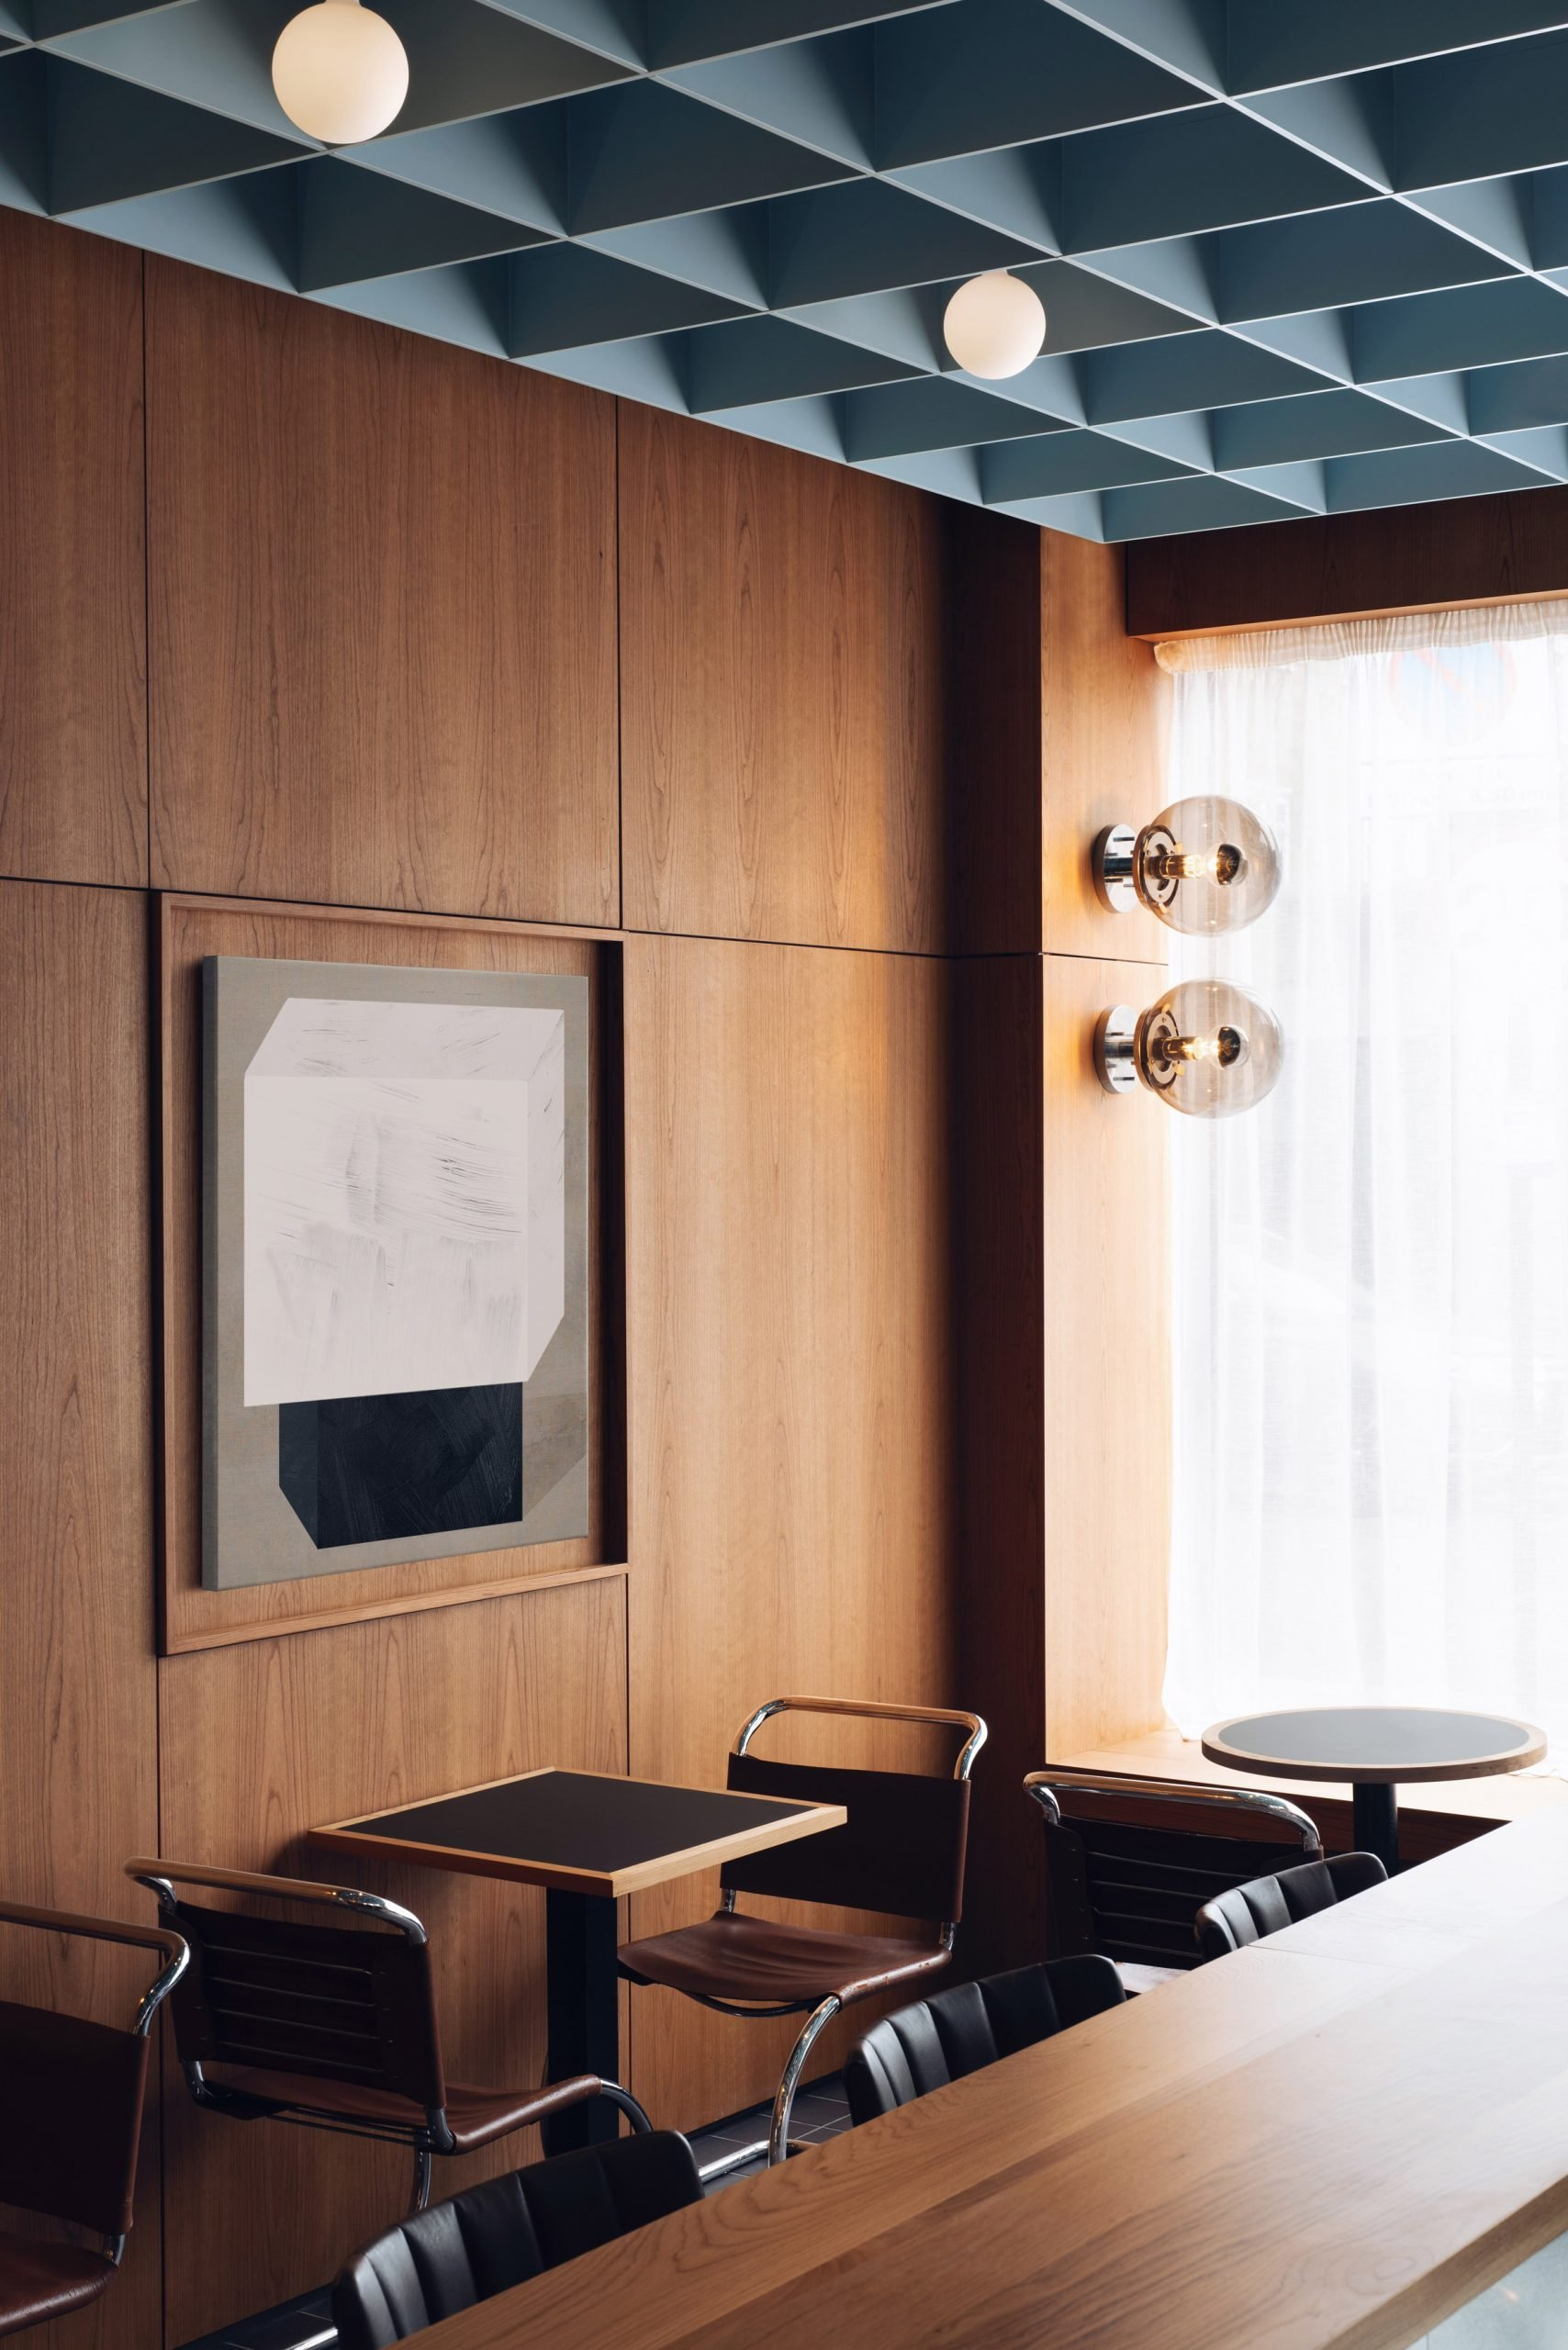 Wood-panelled walls with art in Maido restaurant